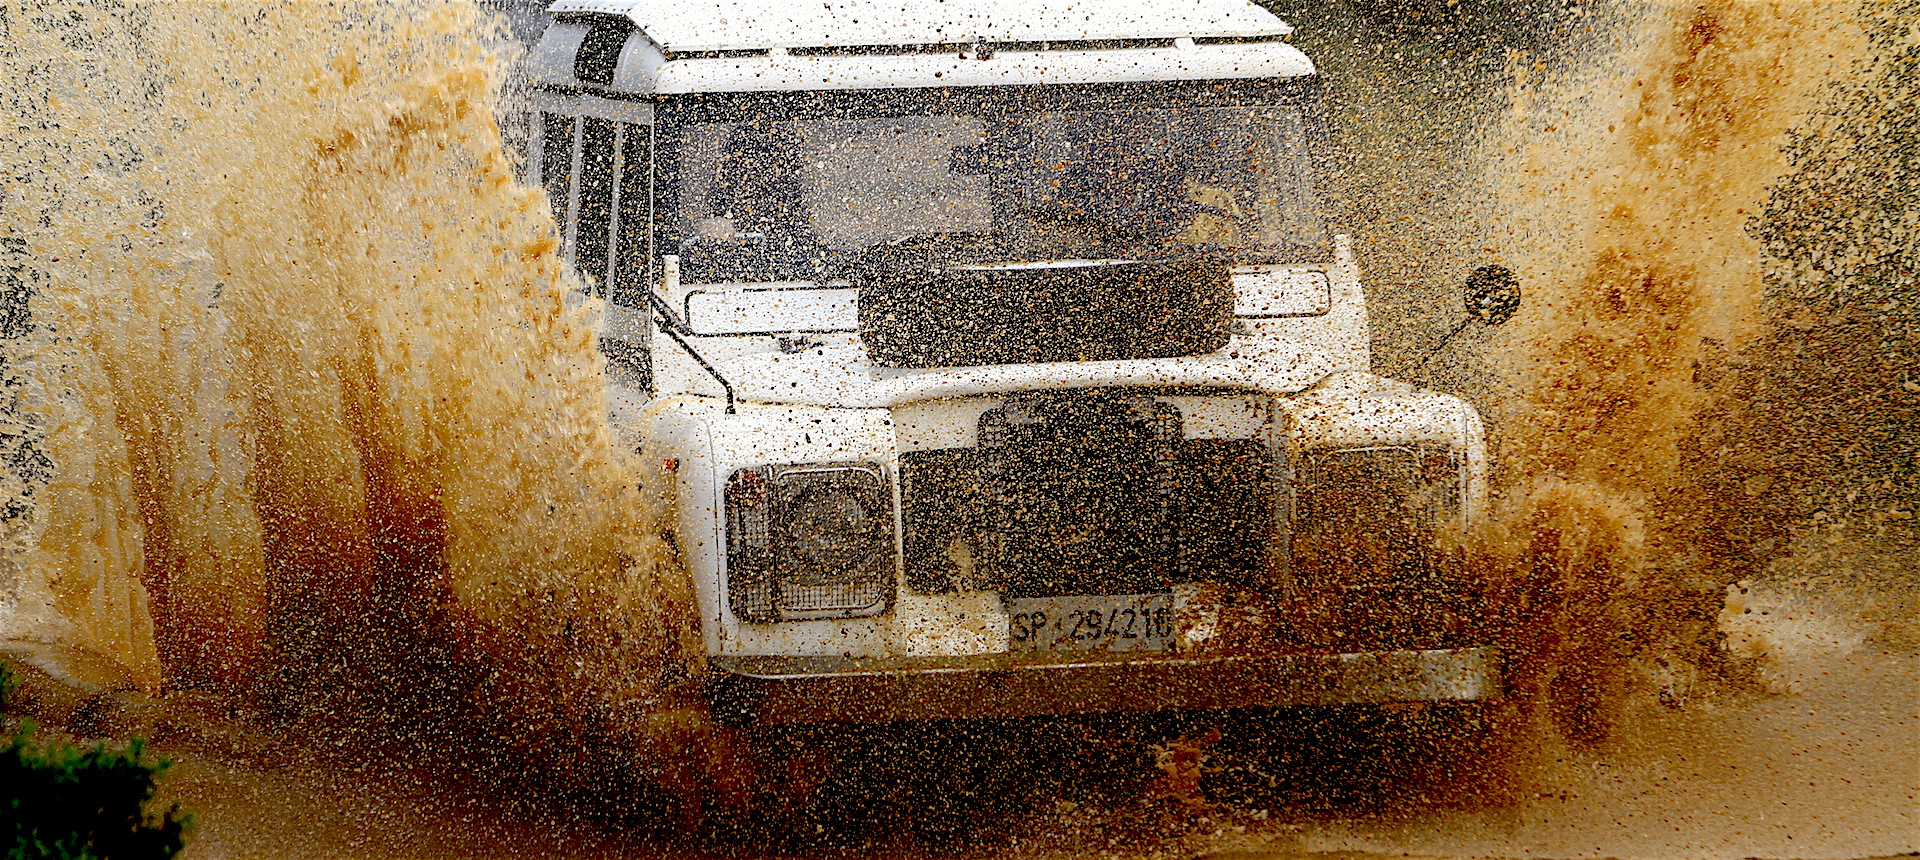 Alghero Resort 4x4 excursions